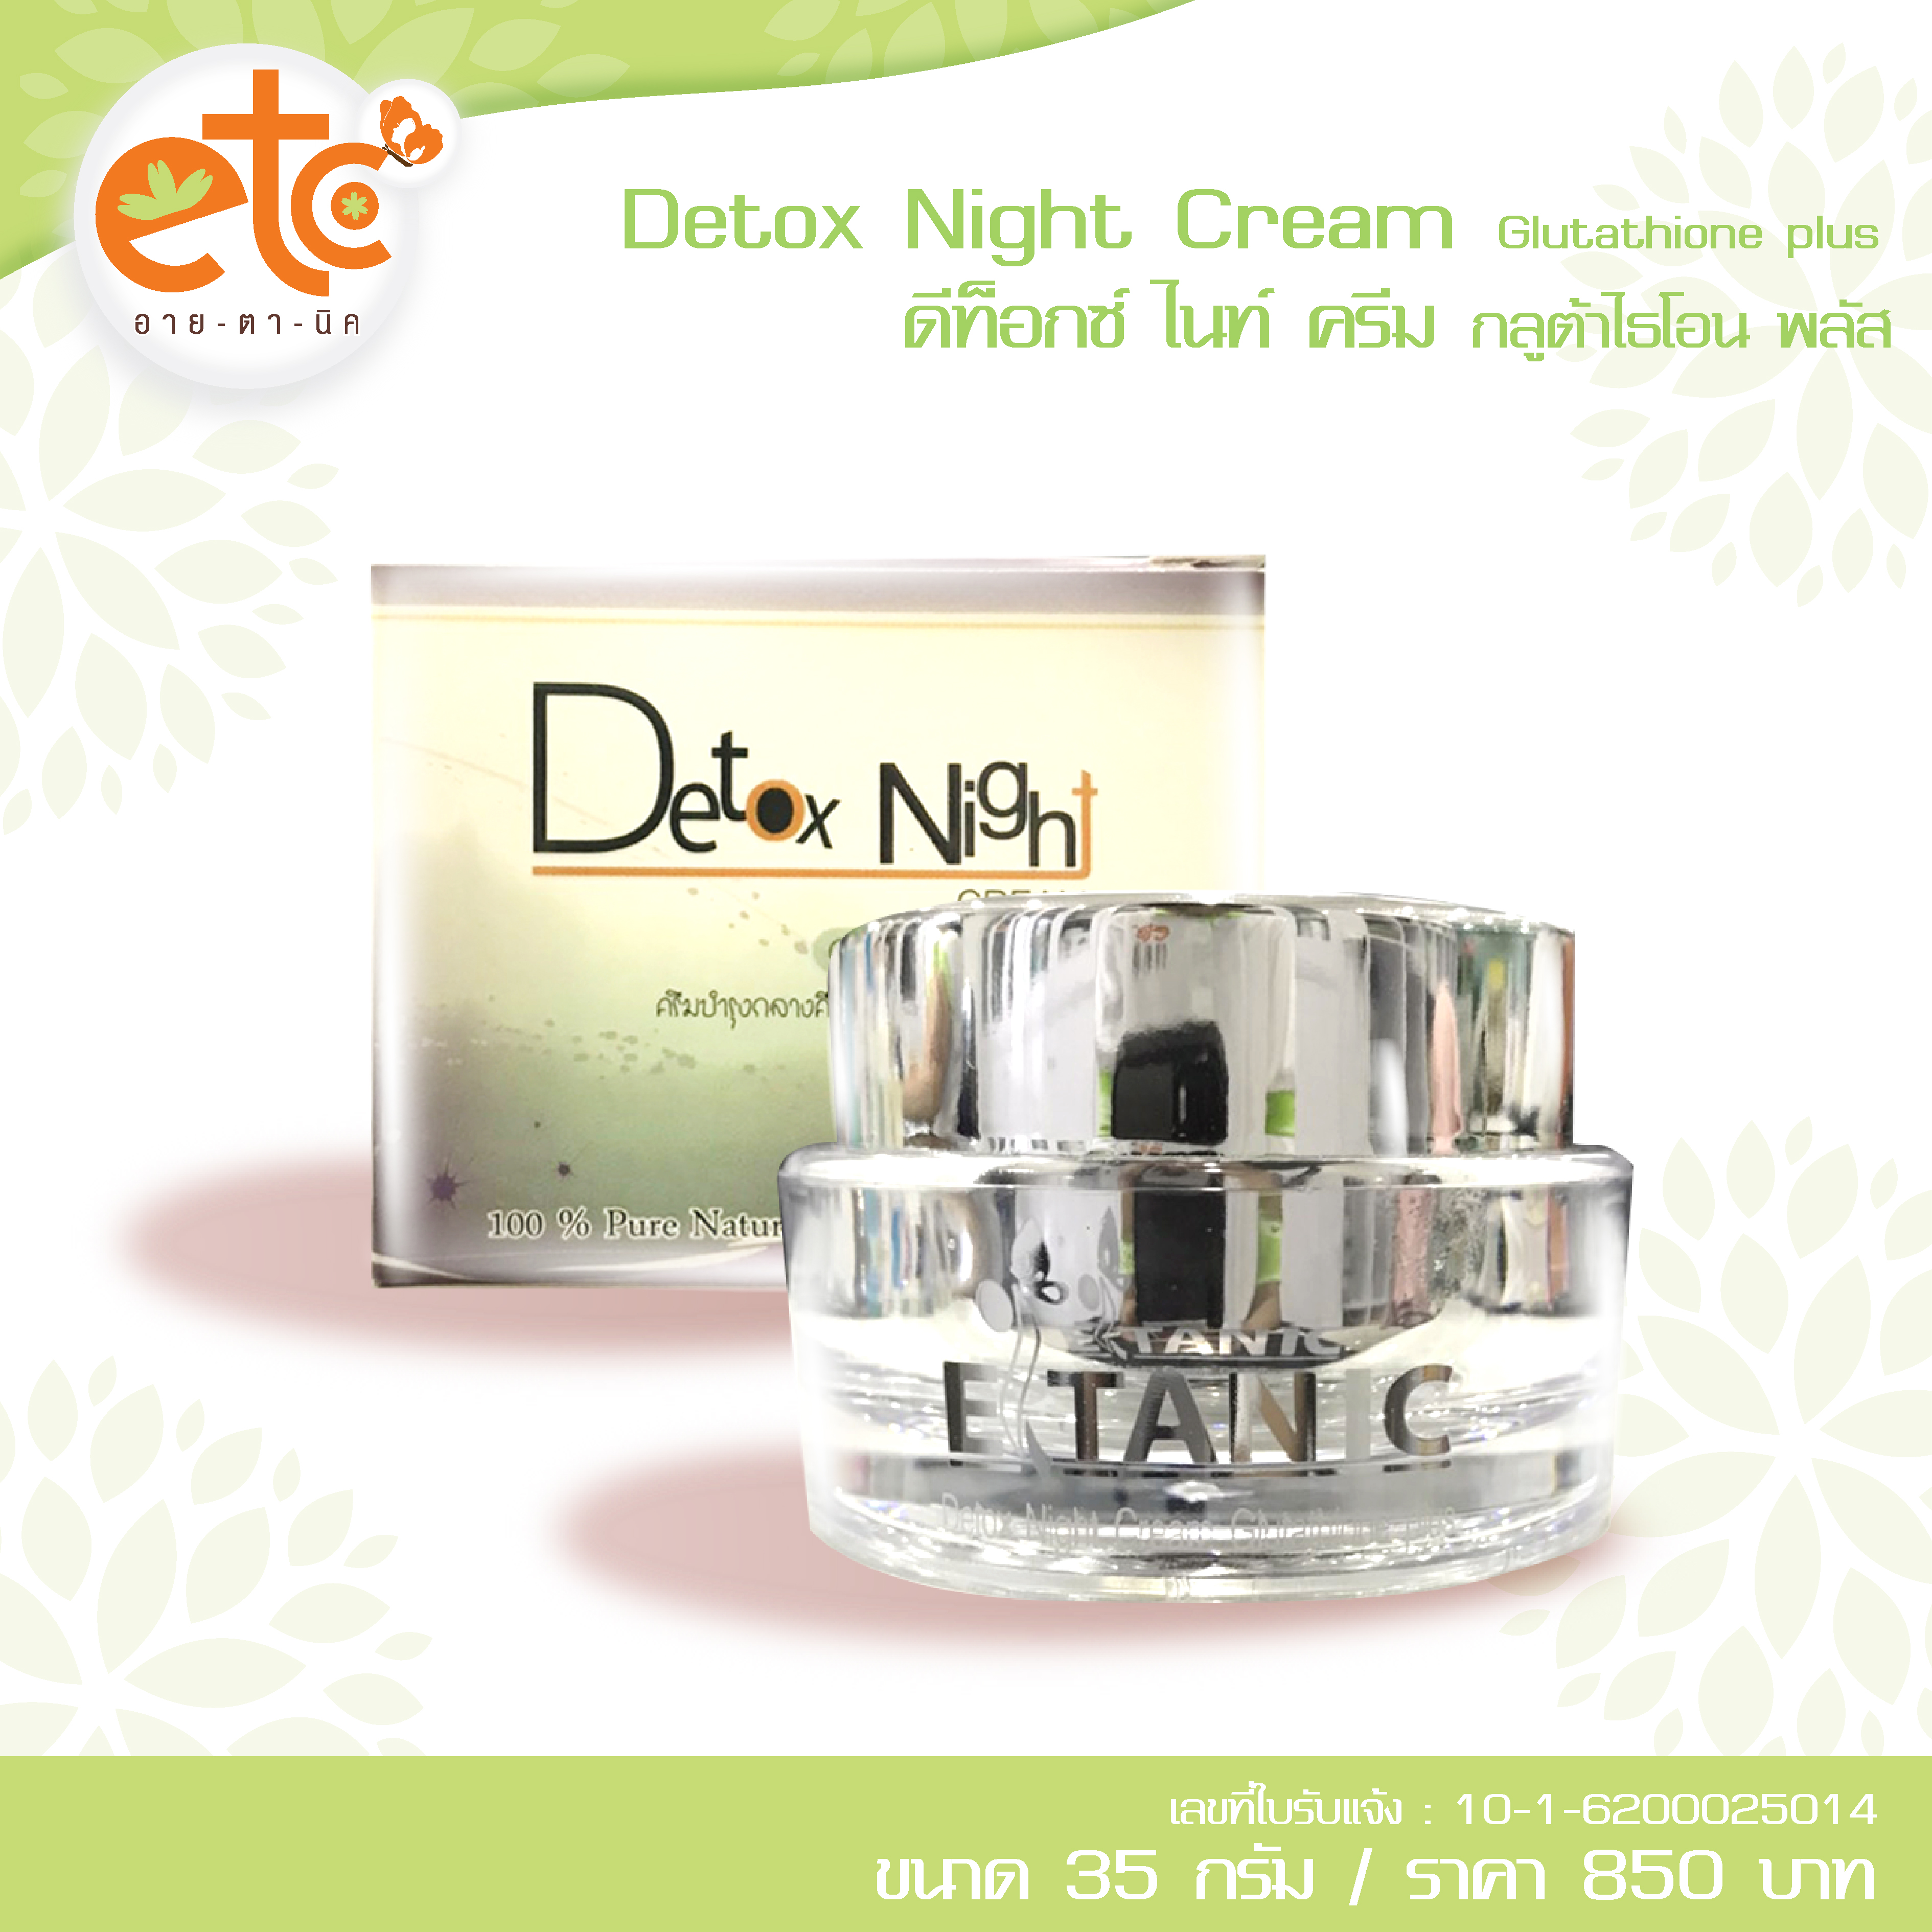 Detox Night Cream Glutathione plus